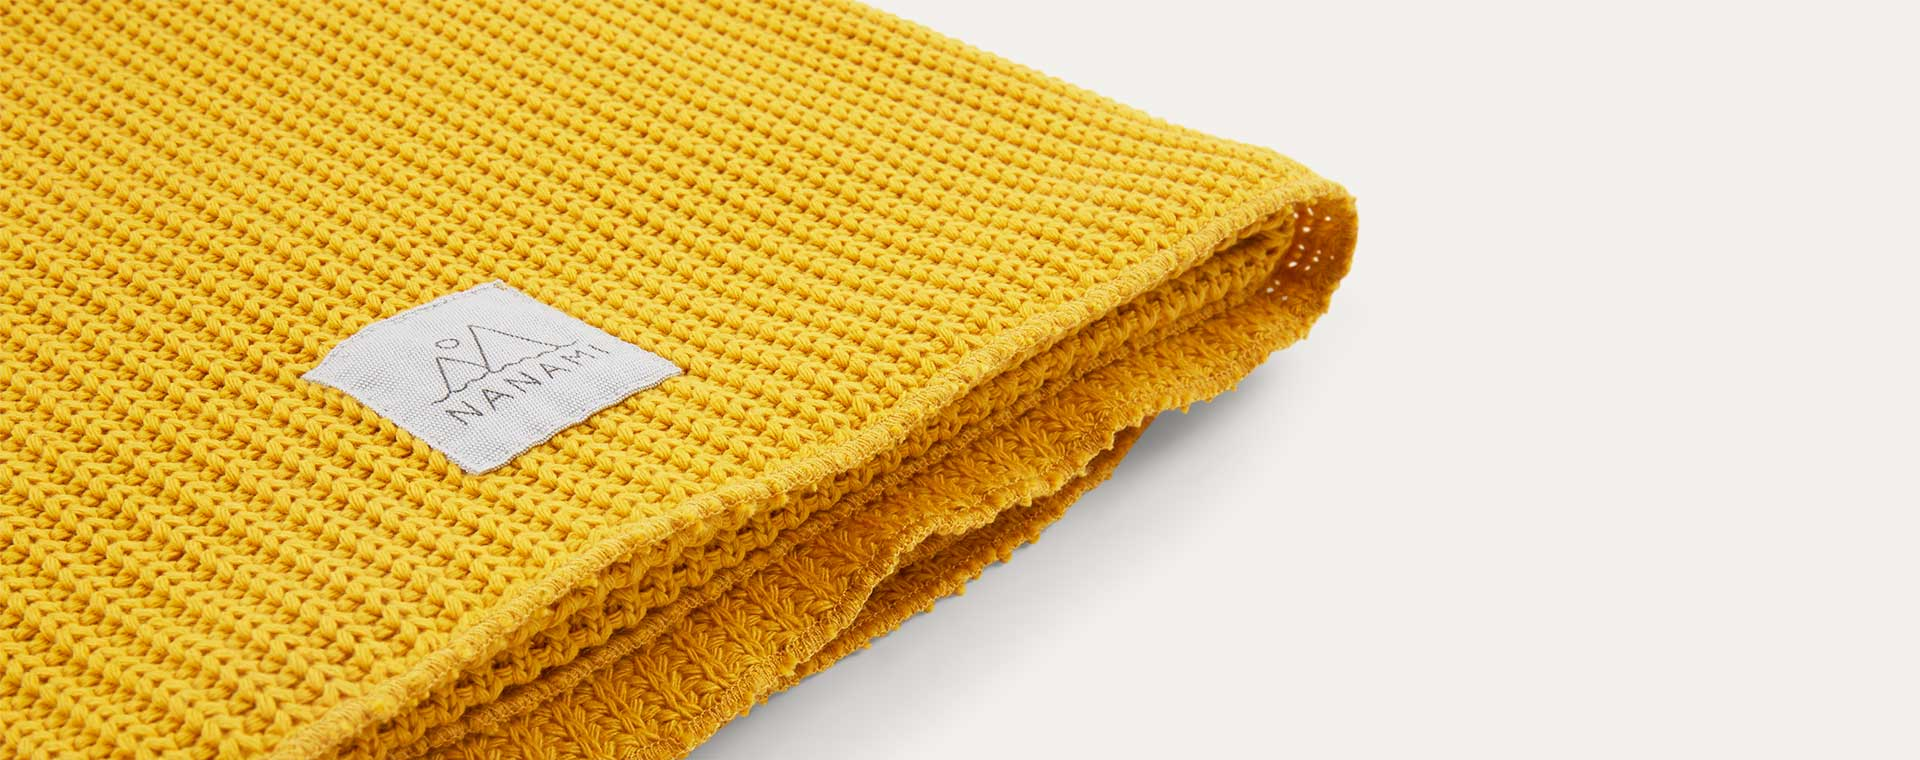 Yellow Nanami Knitted Blanket